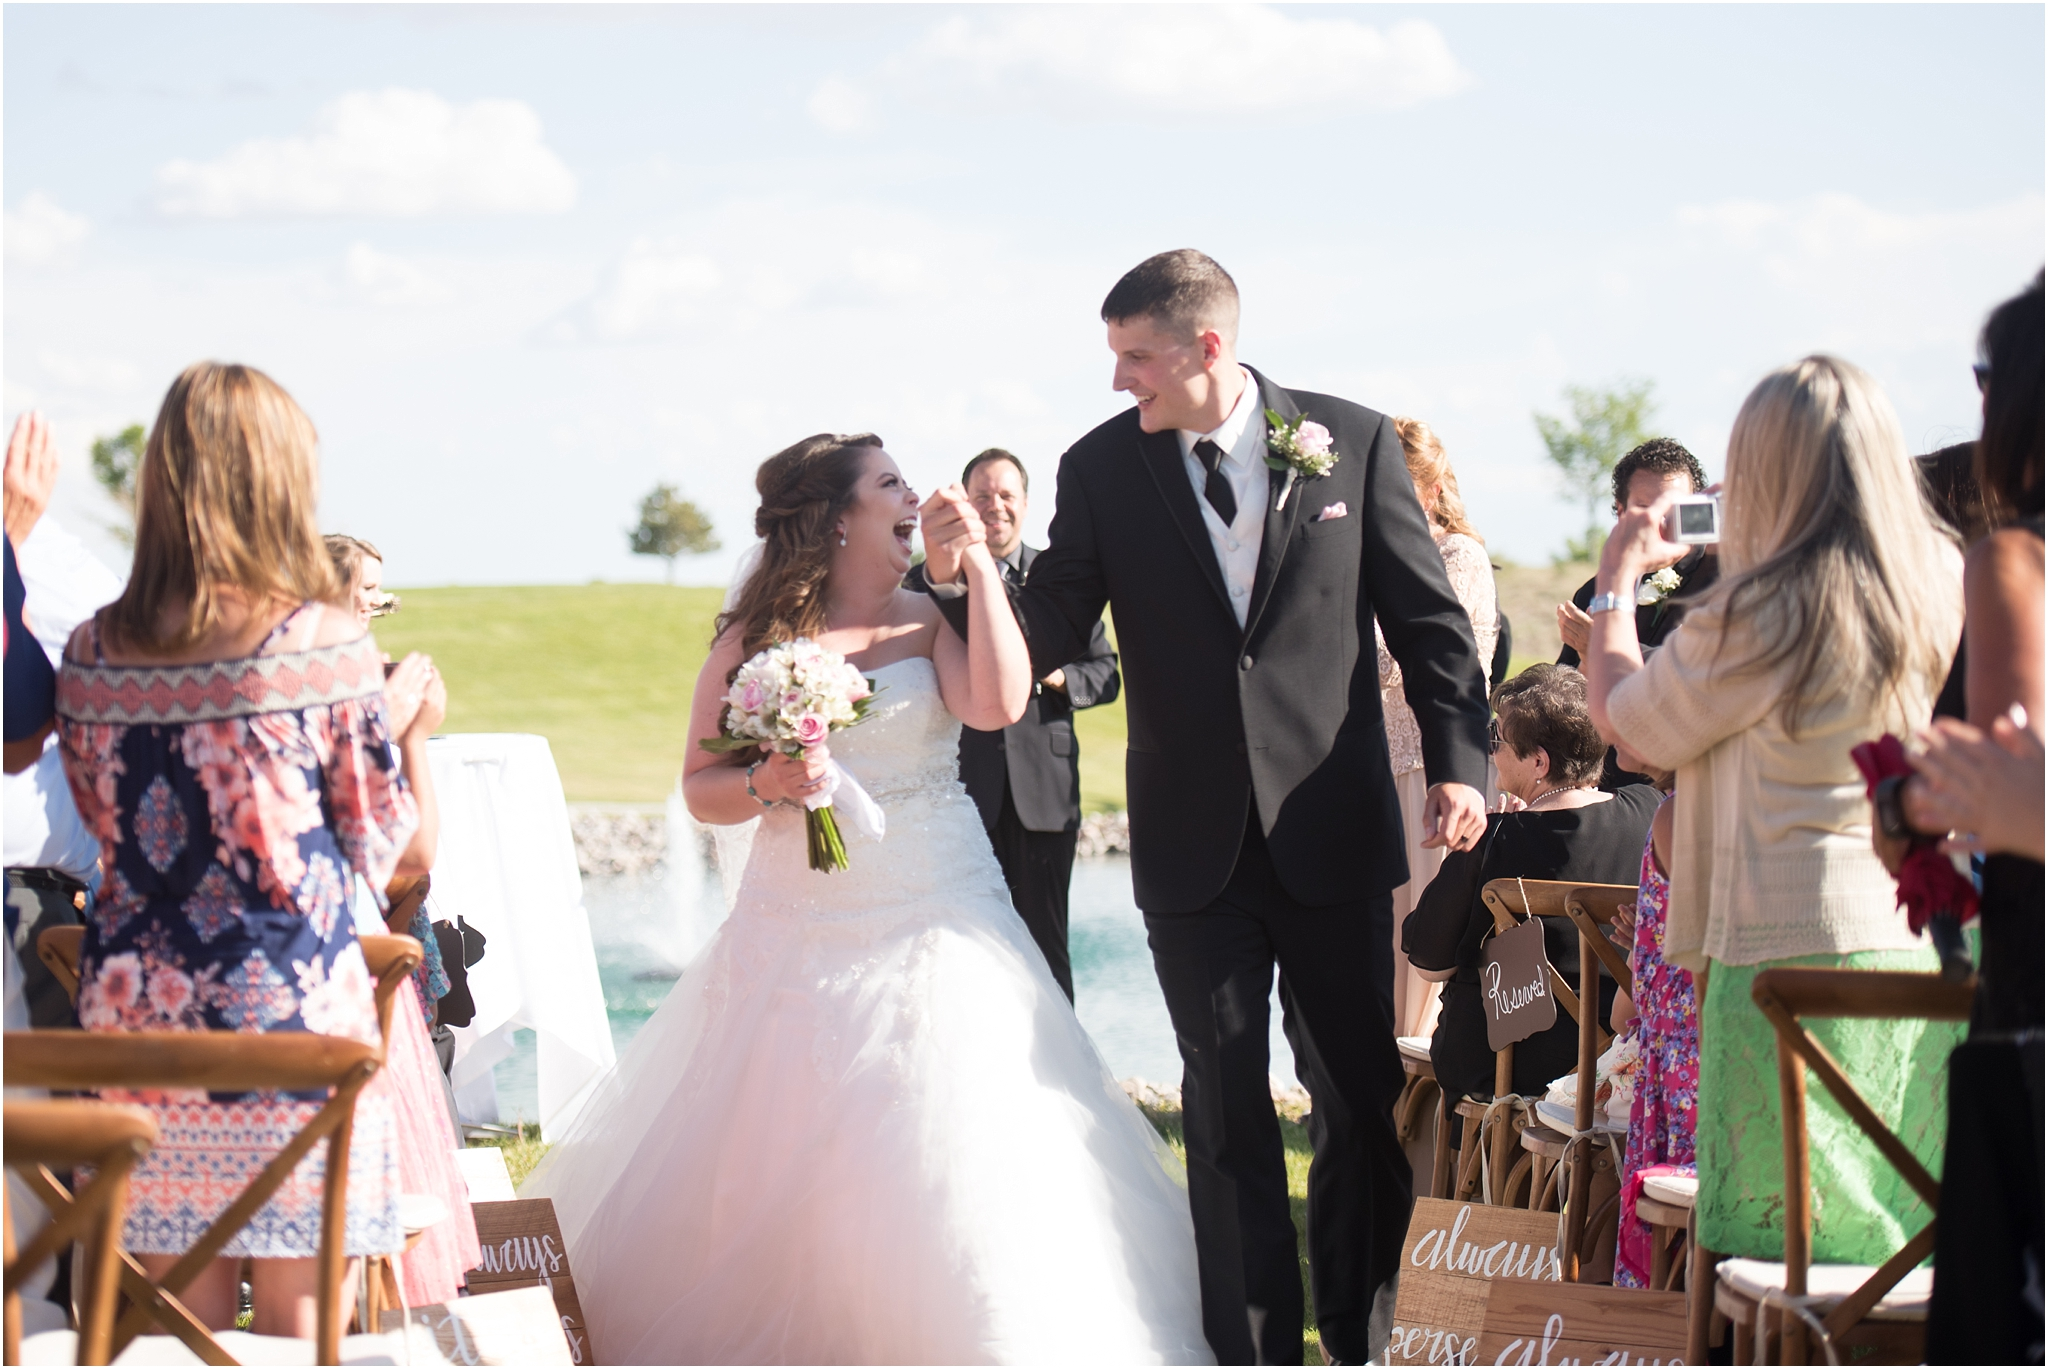 kayla kitts photography - new mexico wedding photographer - albuquerque botanic gardens - hotel albuquerque-casa de suenos_0217.jpg